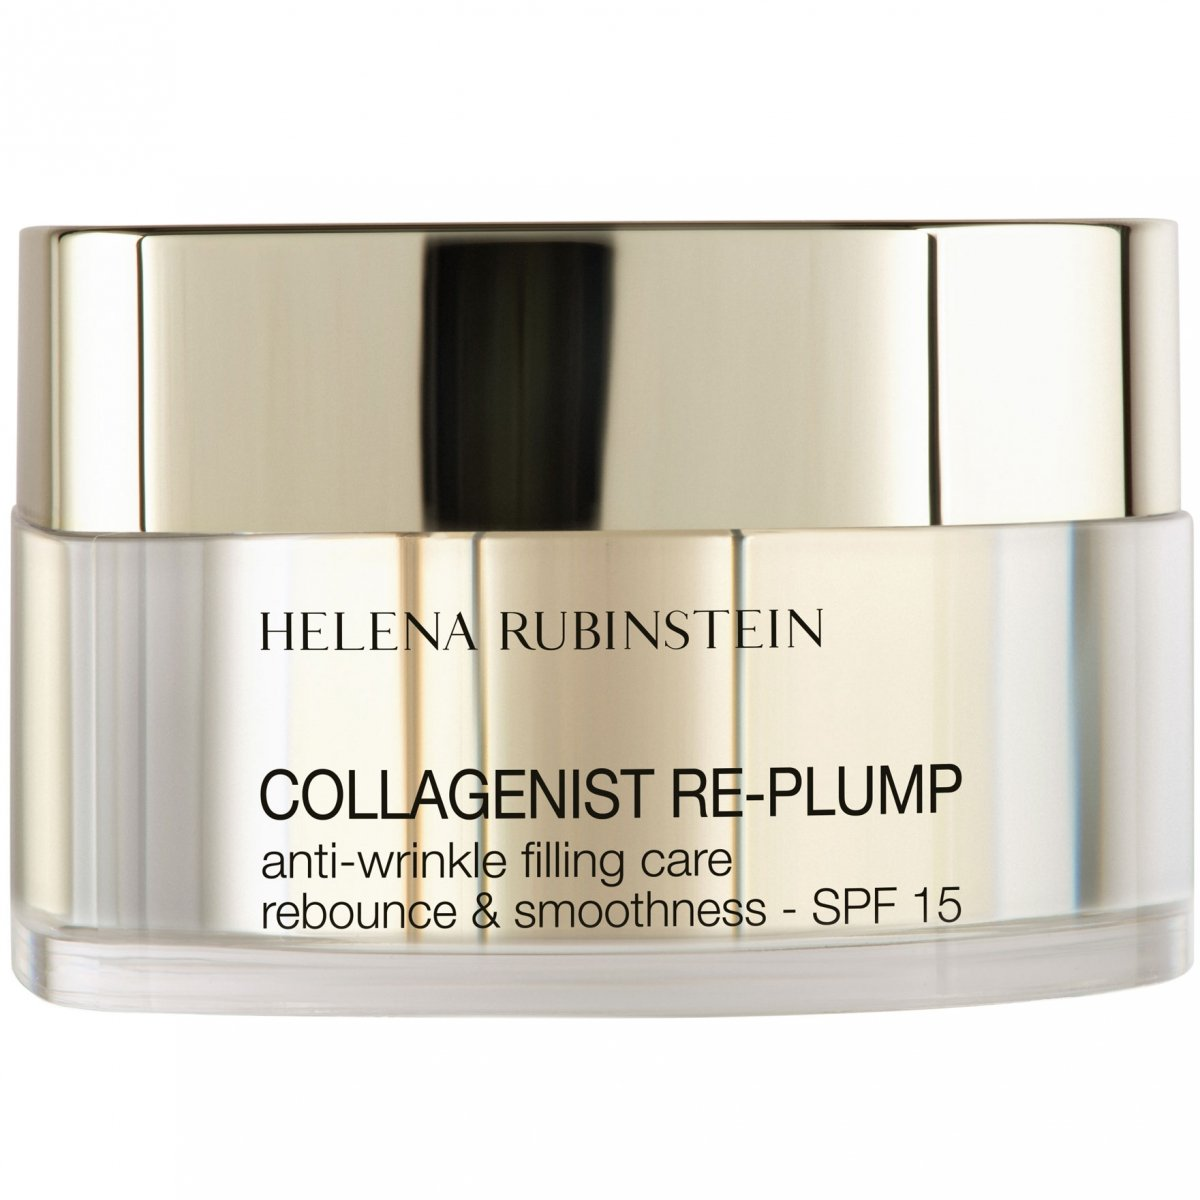 Helena Rubinstein - Collagenist Re-Plump Cream - Normal Skin 50 ml